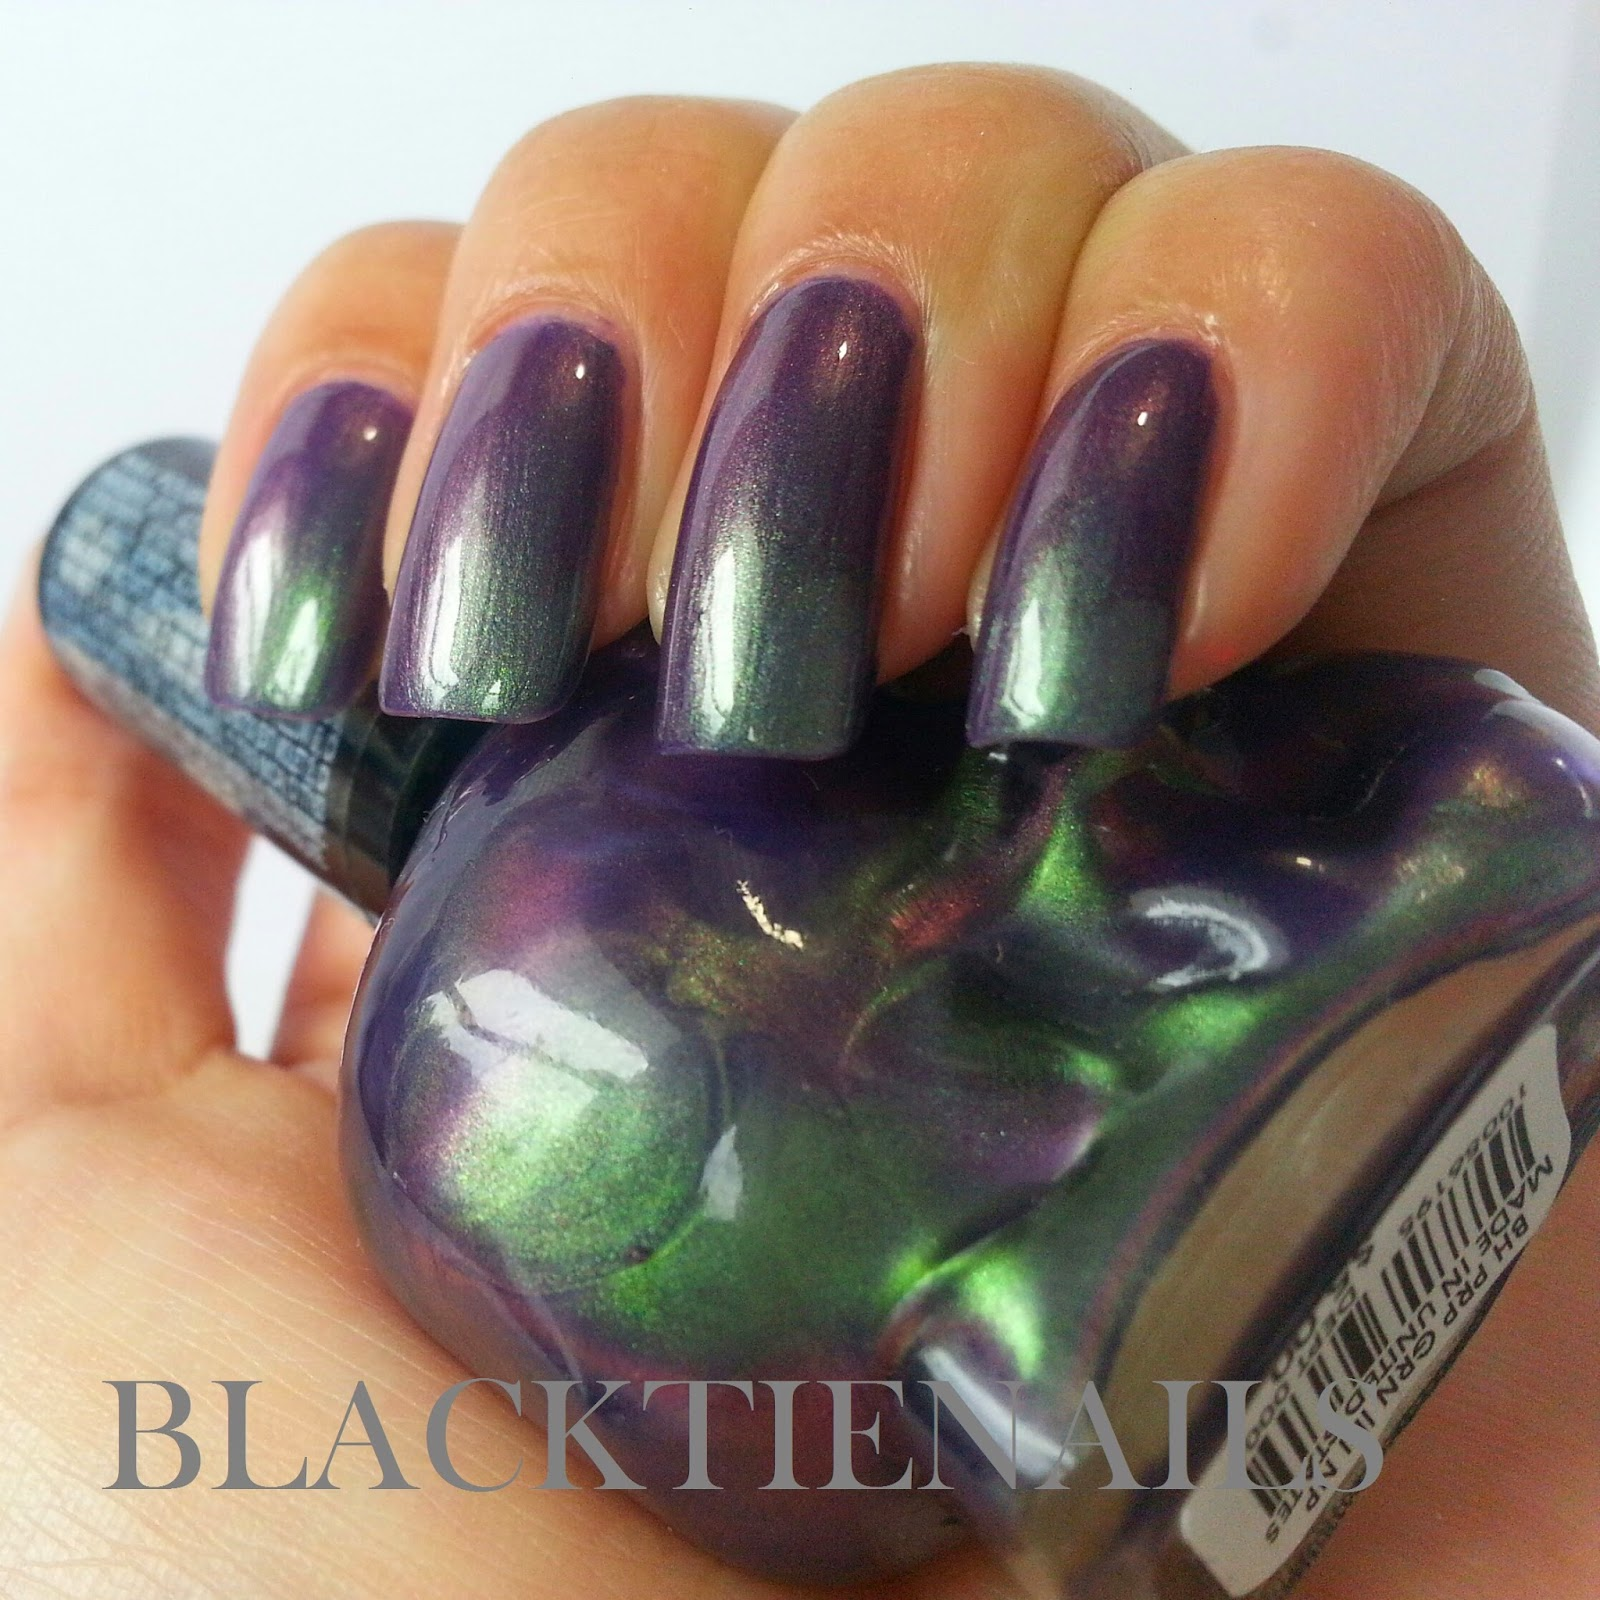 Black Tie Nails: Blackheart Beauty Nail Polish Swatches and ...